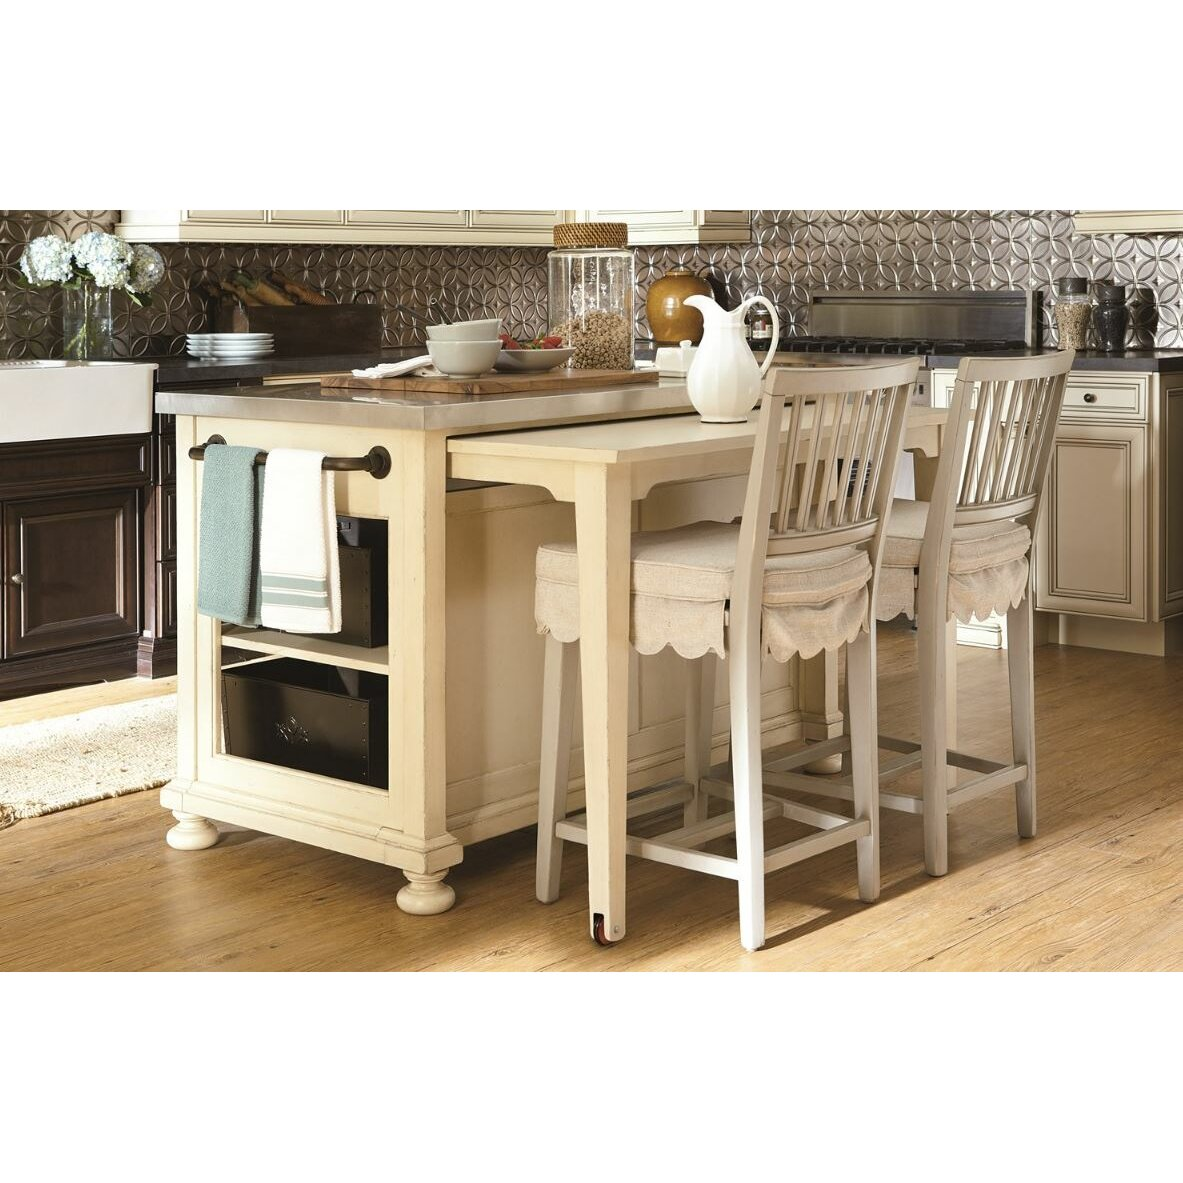 Kitchen Island Furniture: Paula Deen Home River House River House Kitchen Island